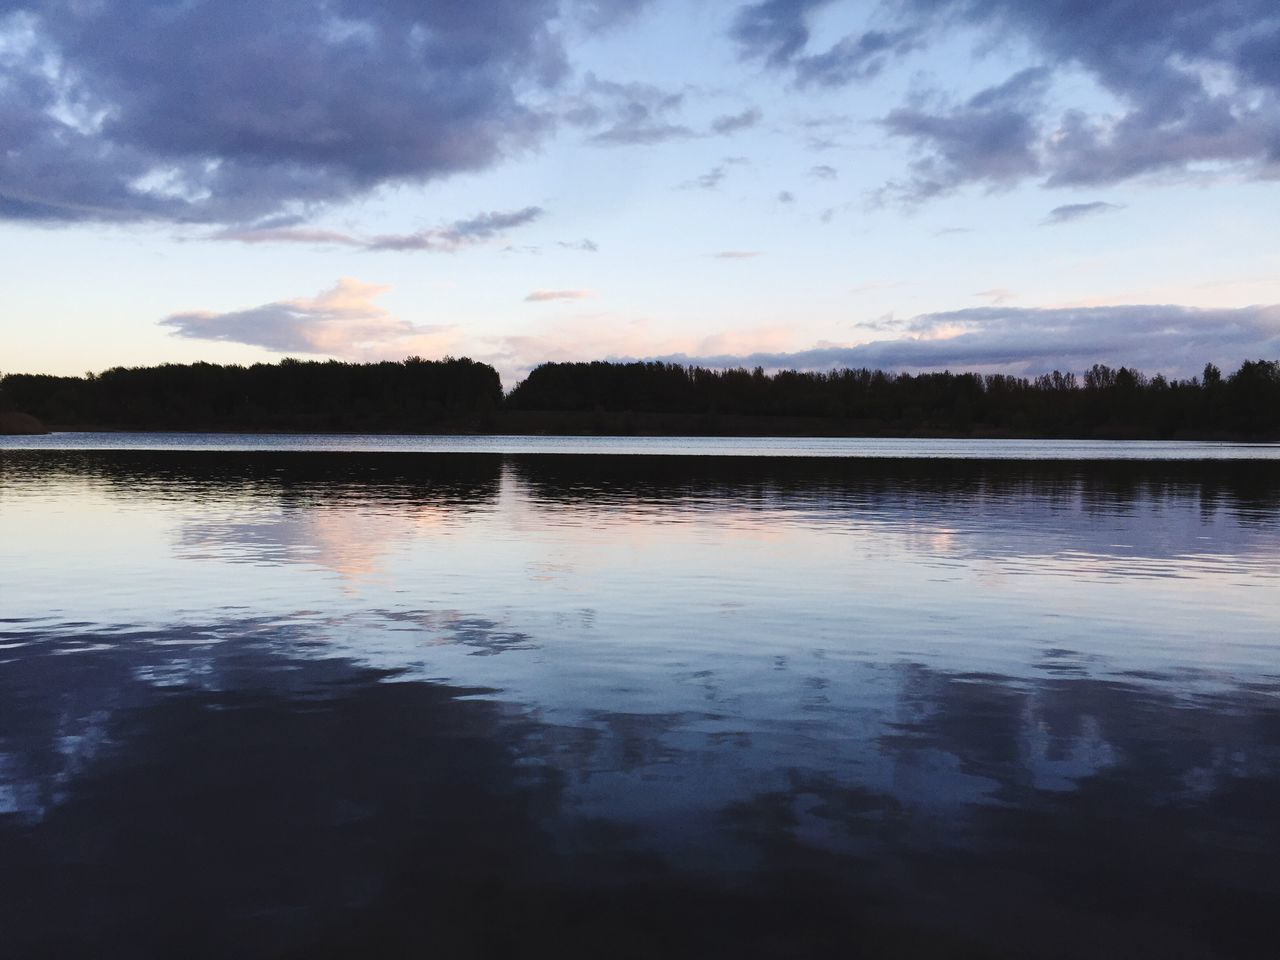 water, reflection, tranquility, lake, beauty in nature, tranquil scene, scenics, sunset, sky, cloud - sky, nature, no people, waterfront, outdoors, day, tree